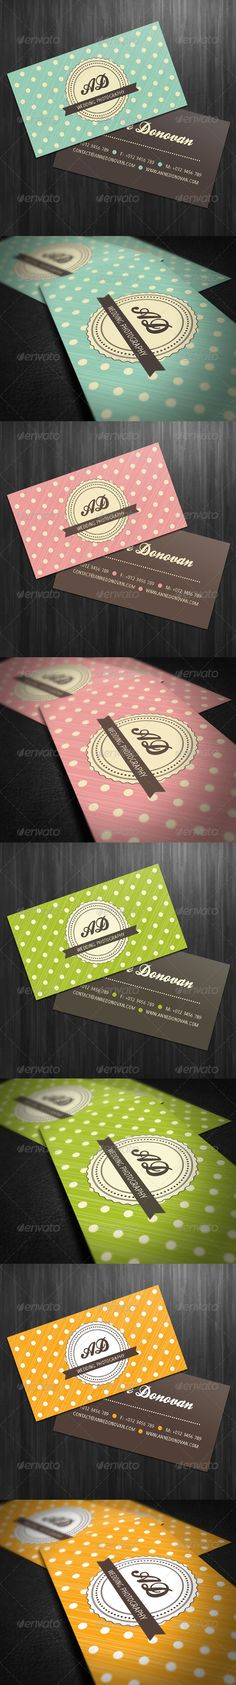 [Colors, simple and sweet] Retro Business Card (4 Color Variations) - GraphicRiver